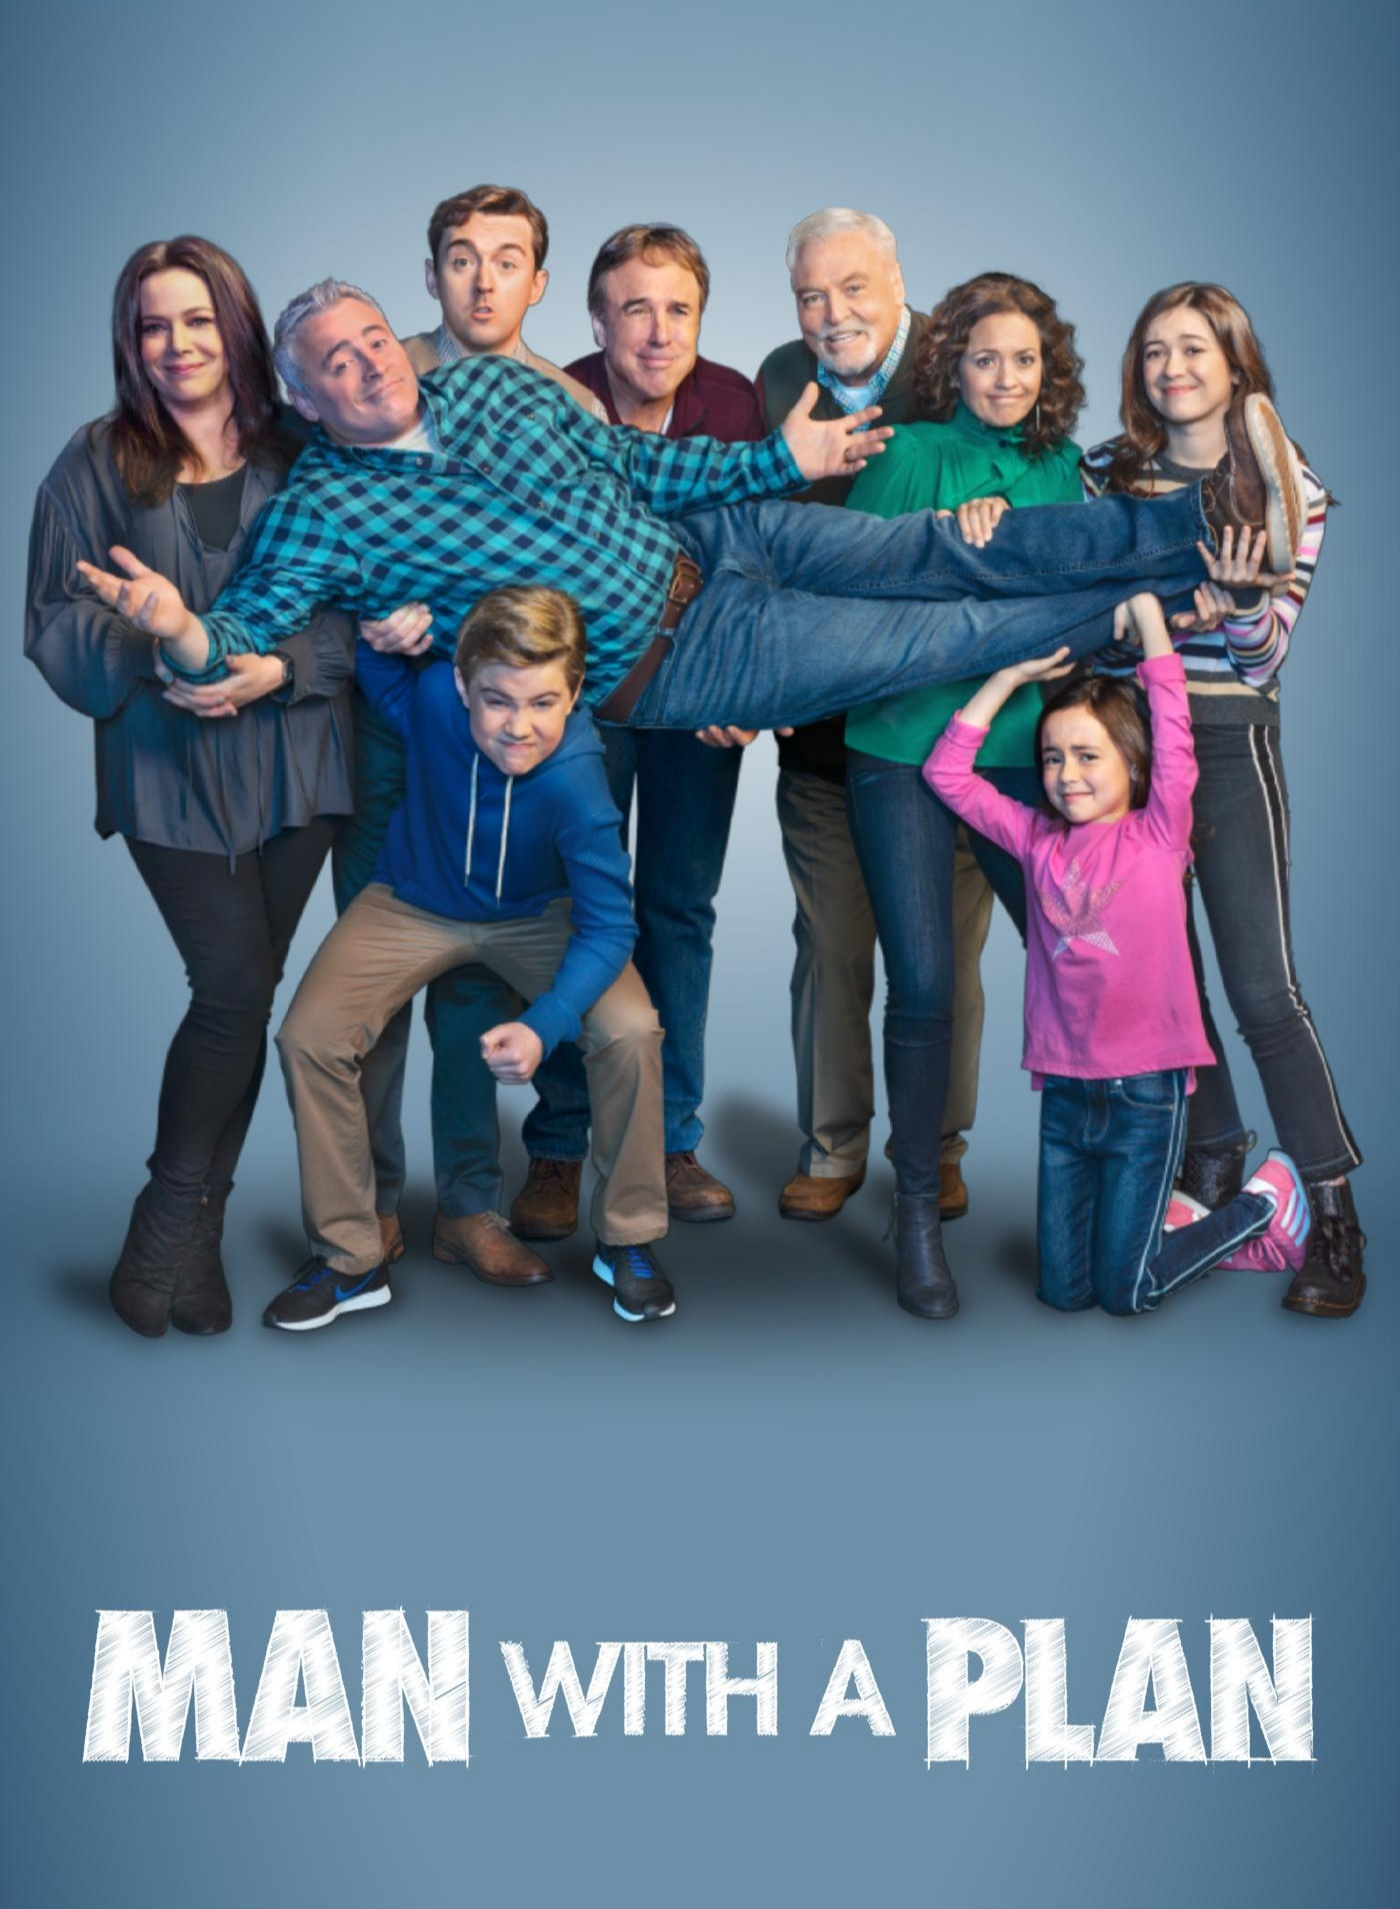 Man with a Plan   Source: TV Line